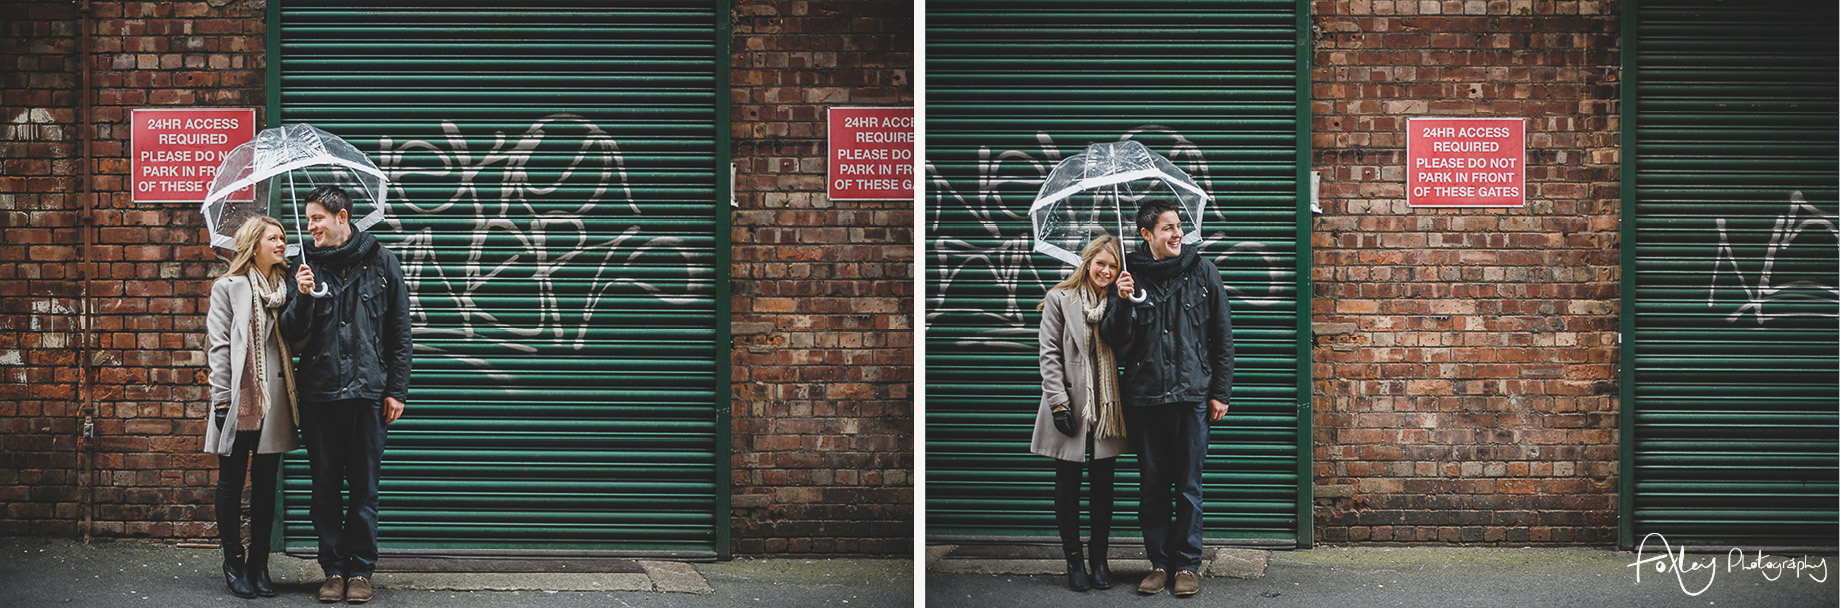 Gemma-and-Lewis-Pre-Wedding-Shoot-Manchester-City-Centre-004